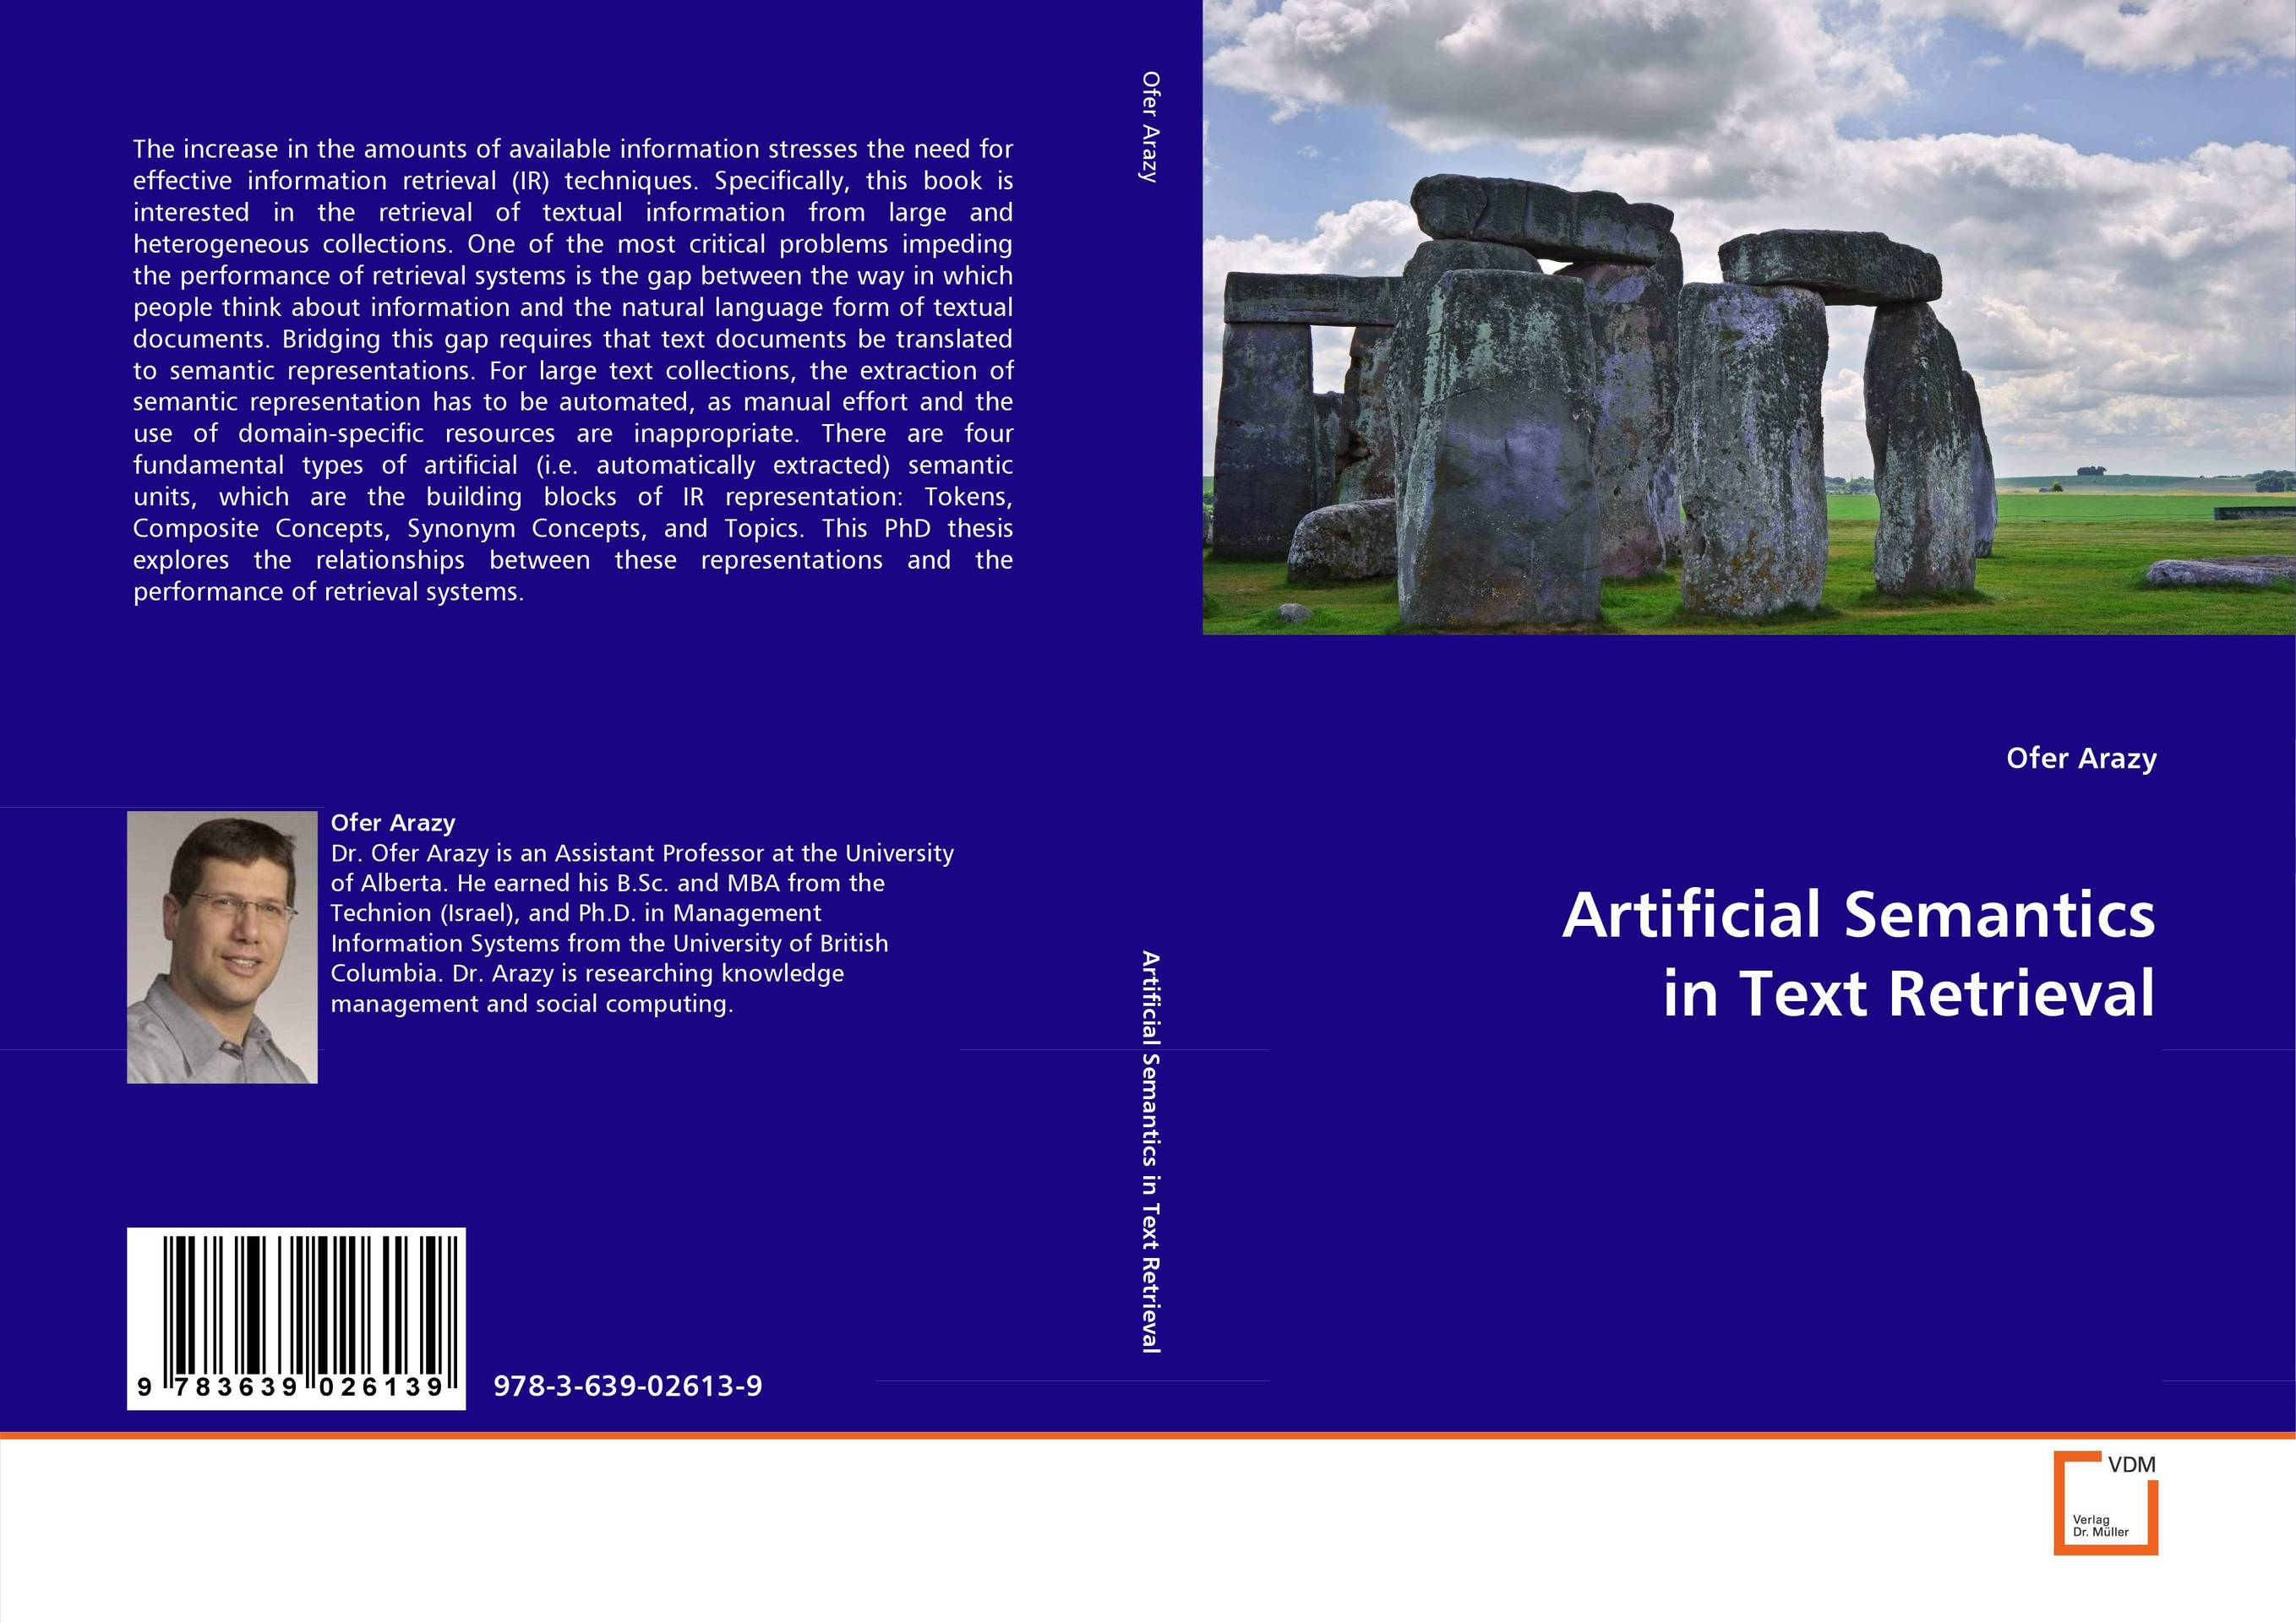 Artificial Semantics in Text Retrieval information searching and retrieval